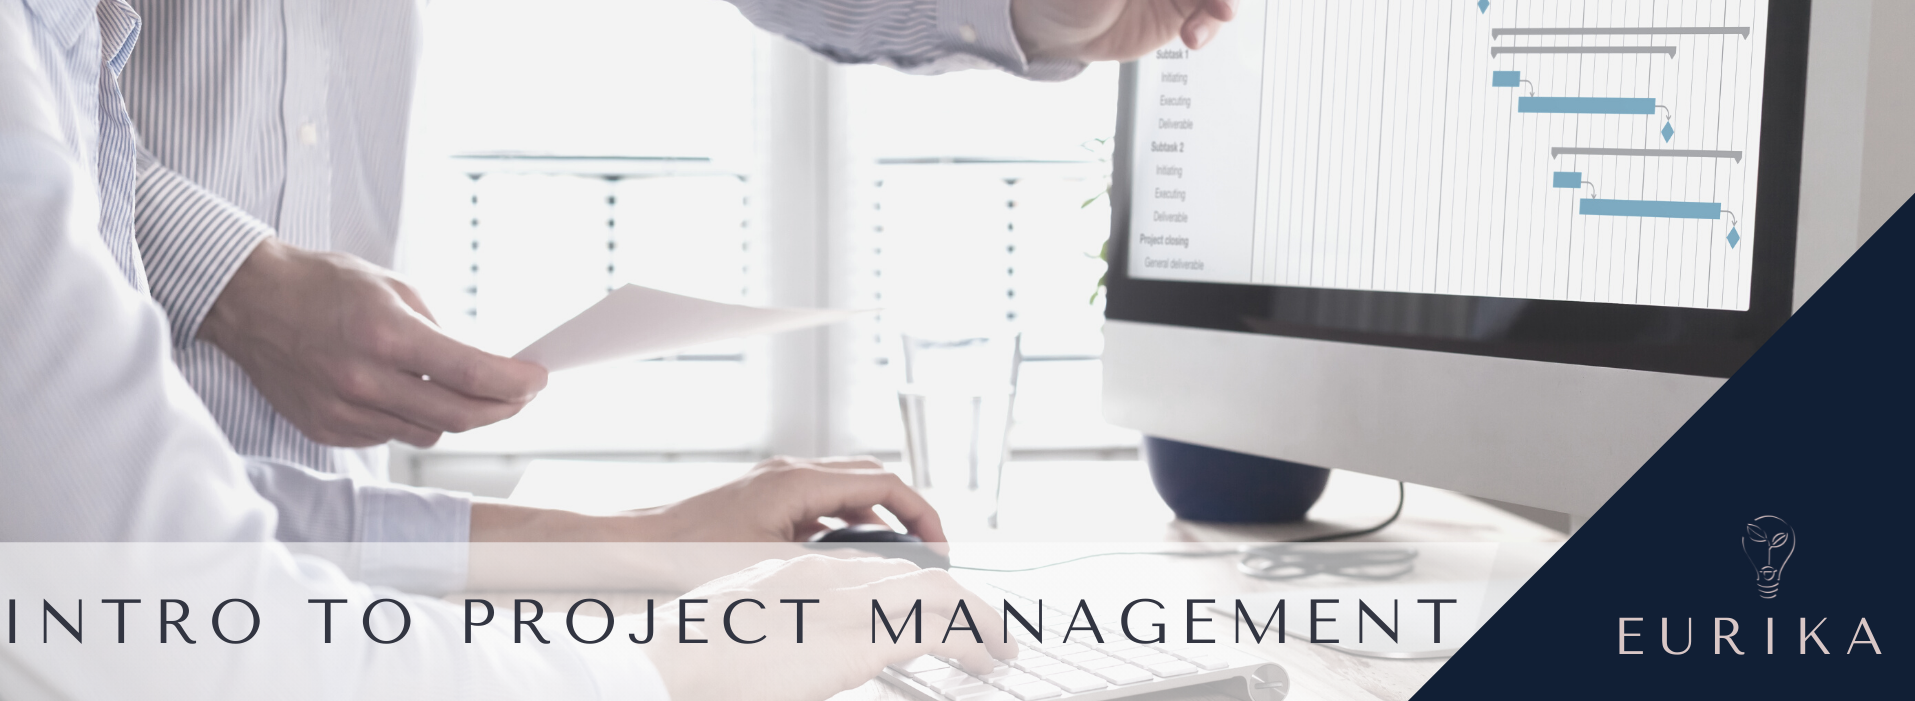 Introduction to project management course 2 eurika northamptonshire, buckinghamshire, leicestershire, warwickshire, london